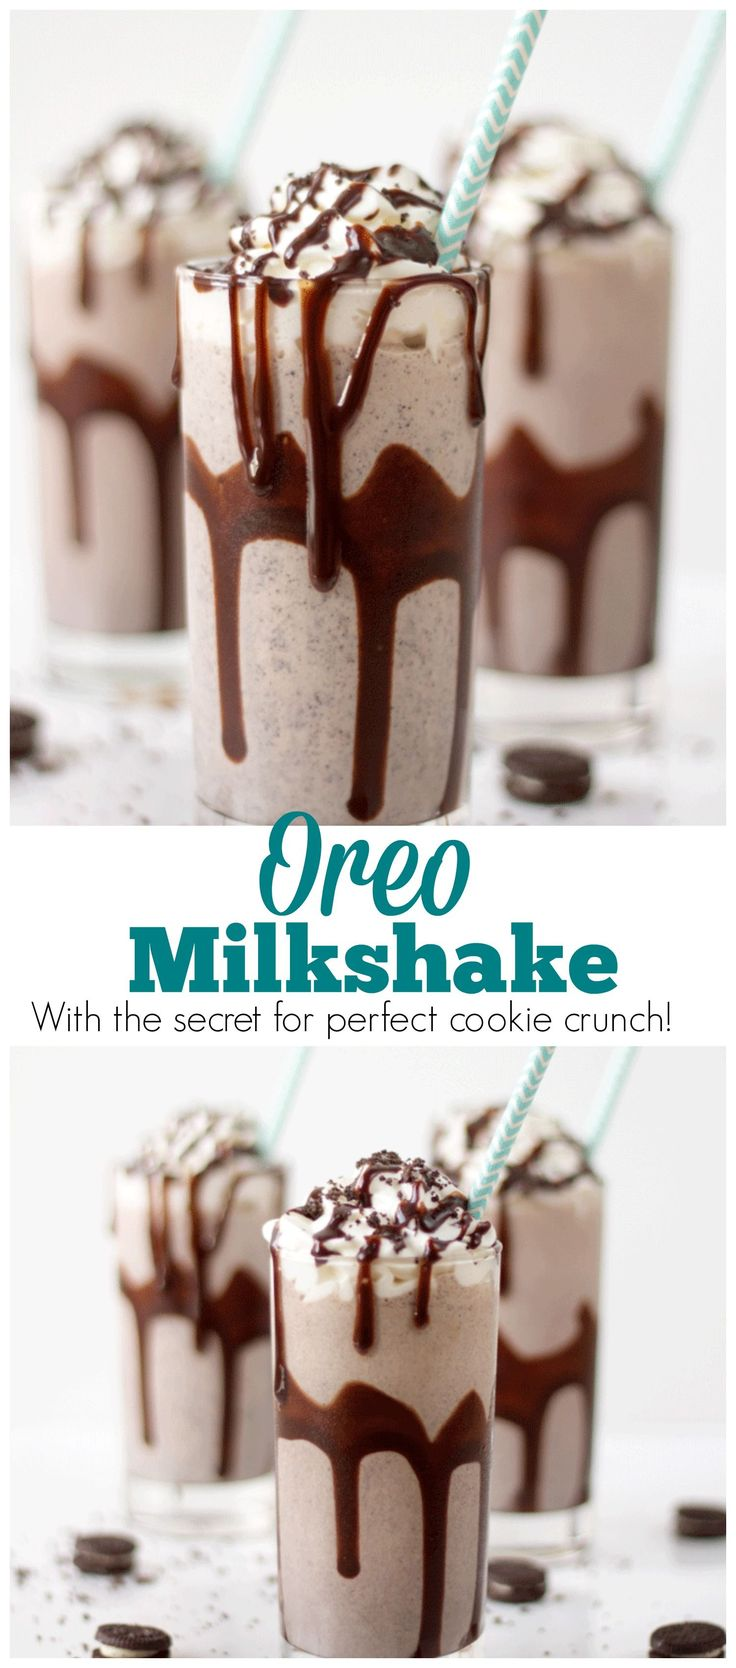 There is no need to get in your car and drive to an ice cream shop to get an Oreo milkshake with this great recipe you can make at home.